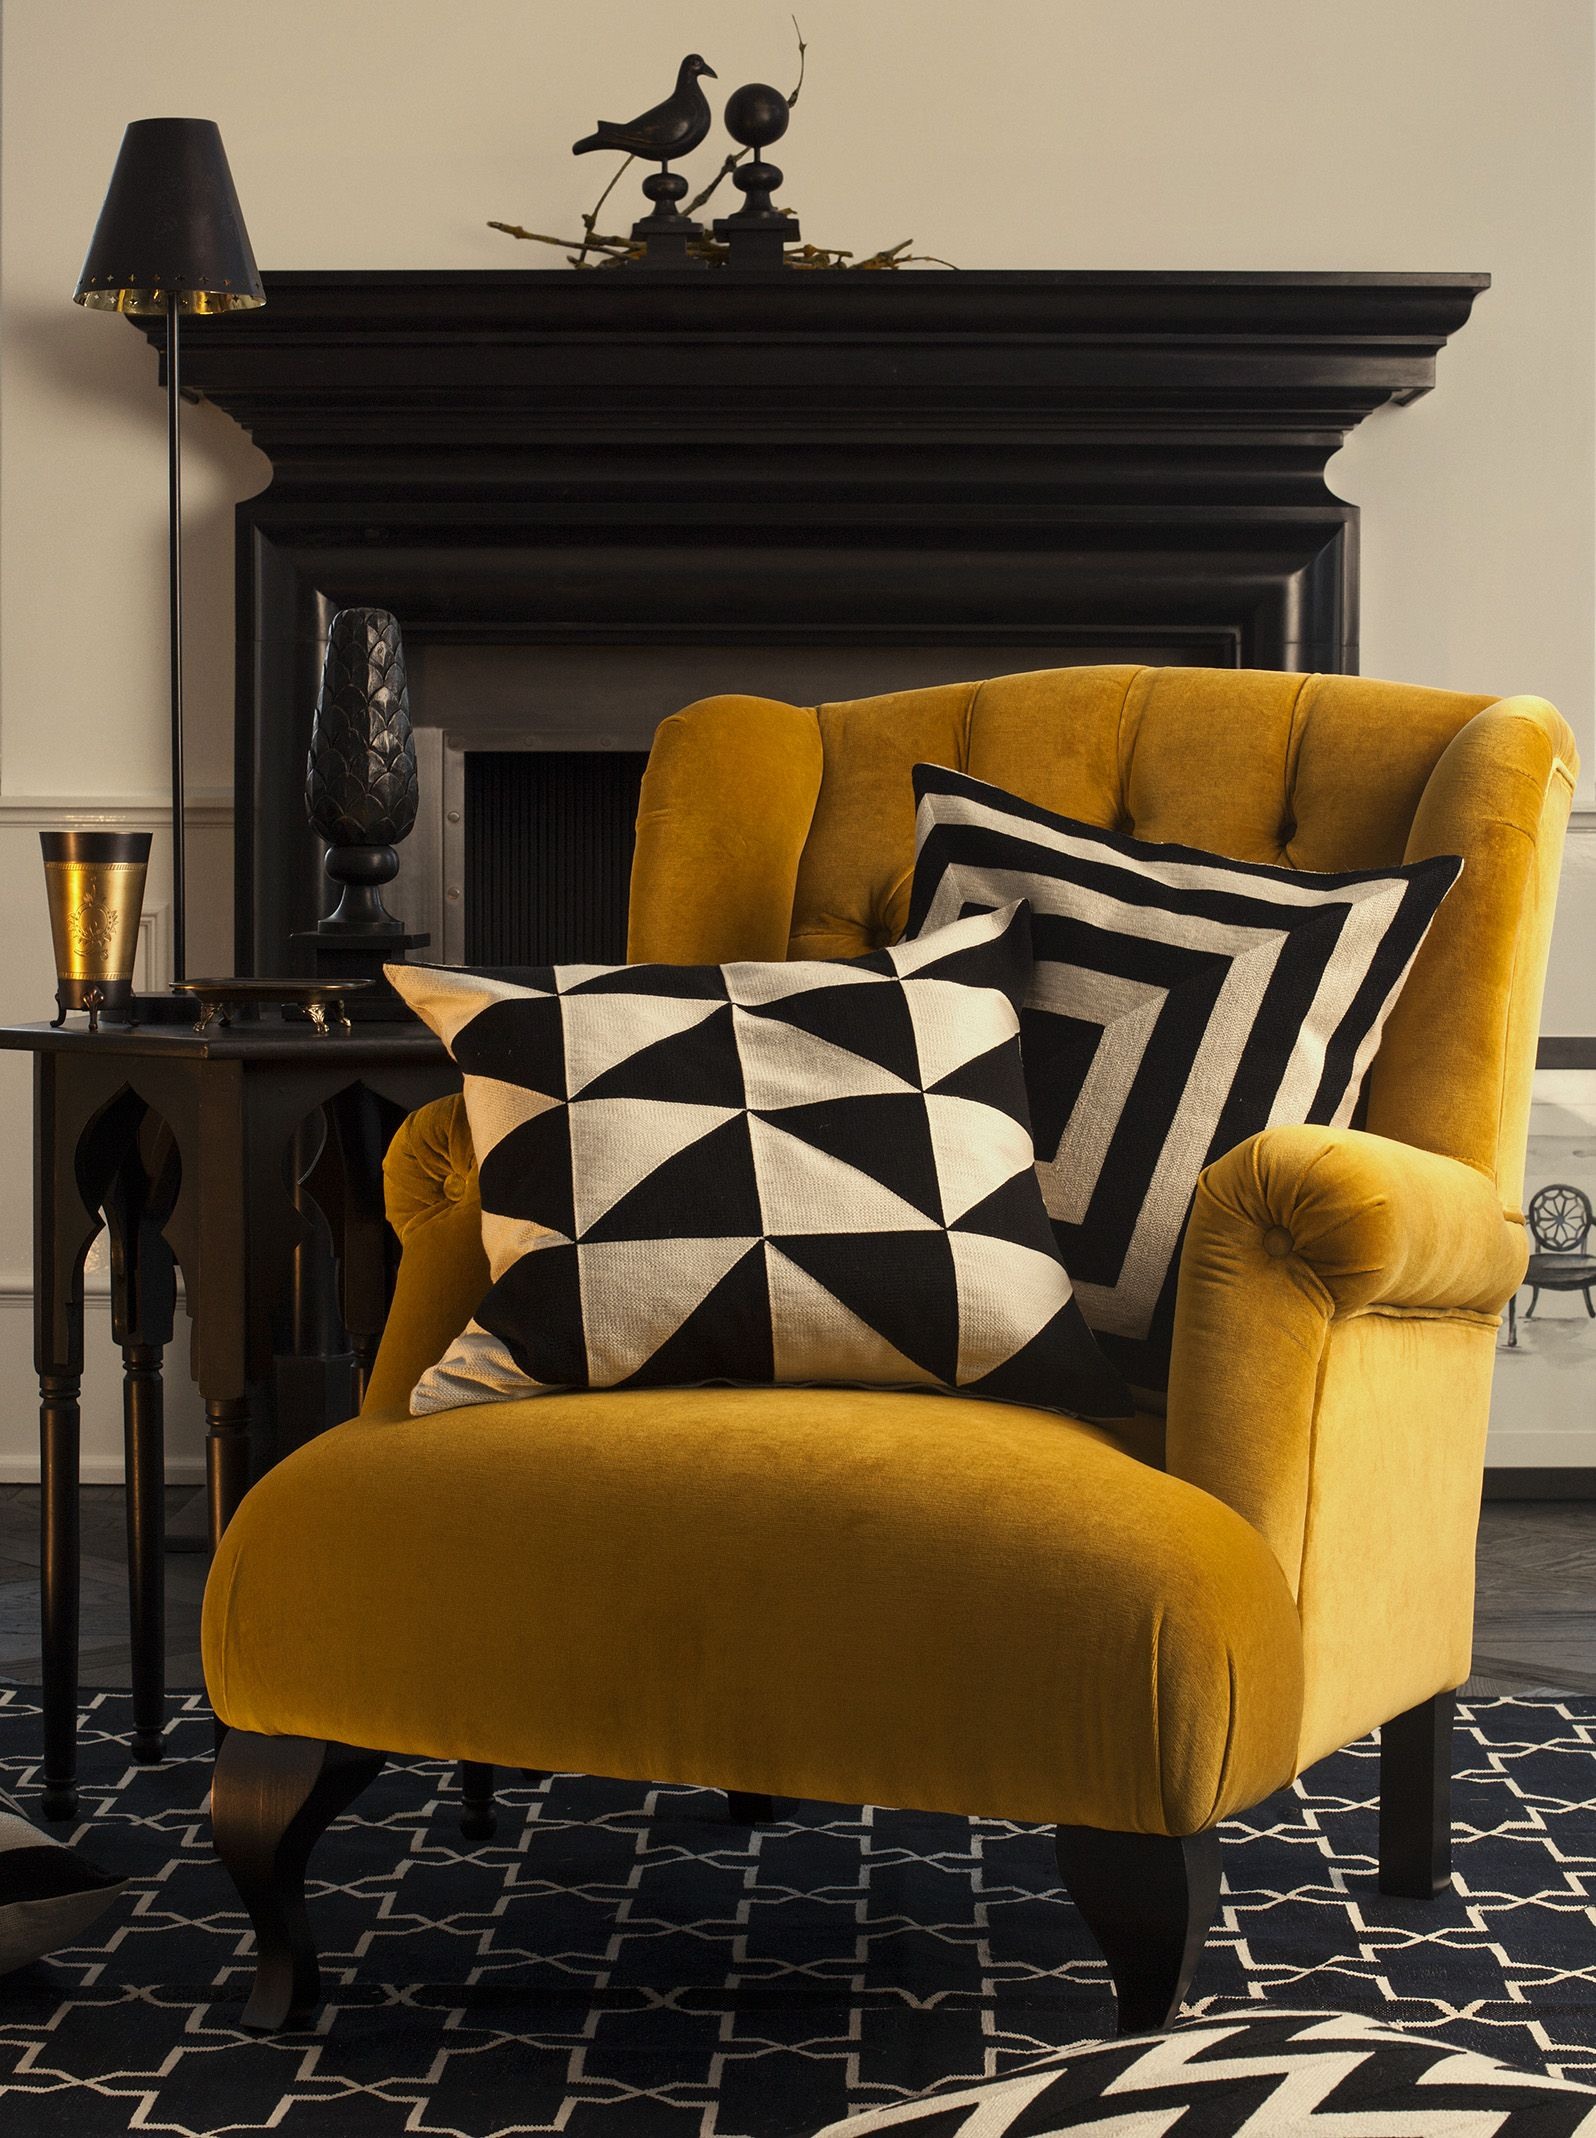 Mustard Accessories For Living Room Get 15 Off Day Birger Et Mikkelsen Home Products Through